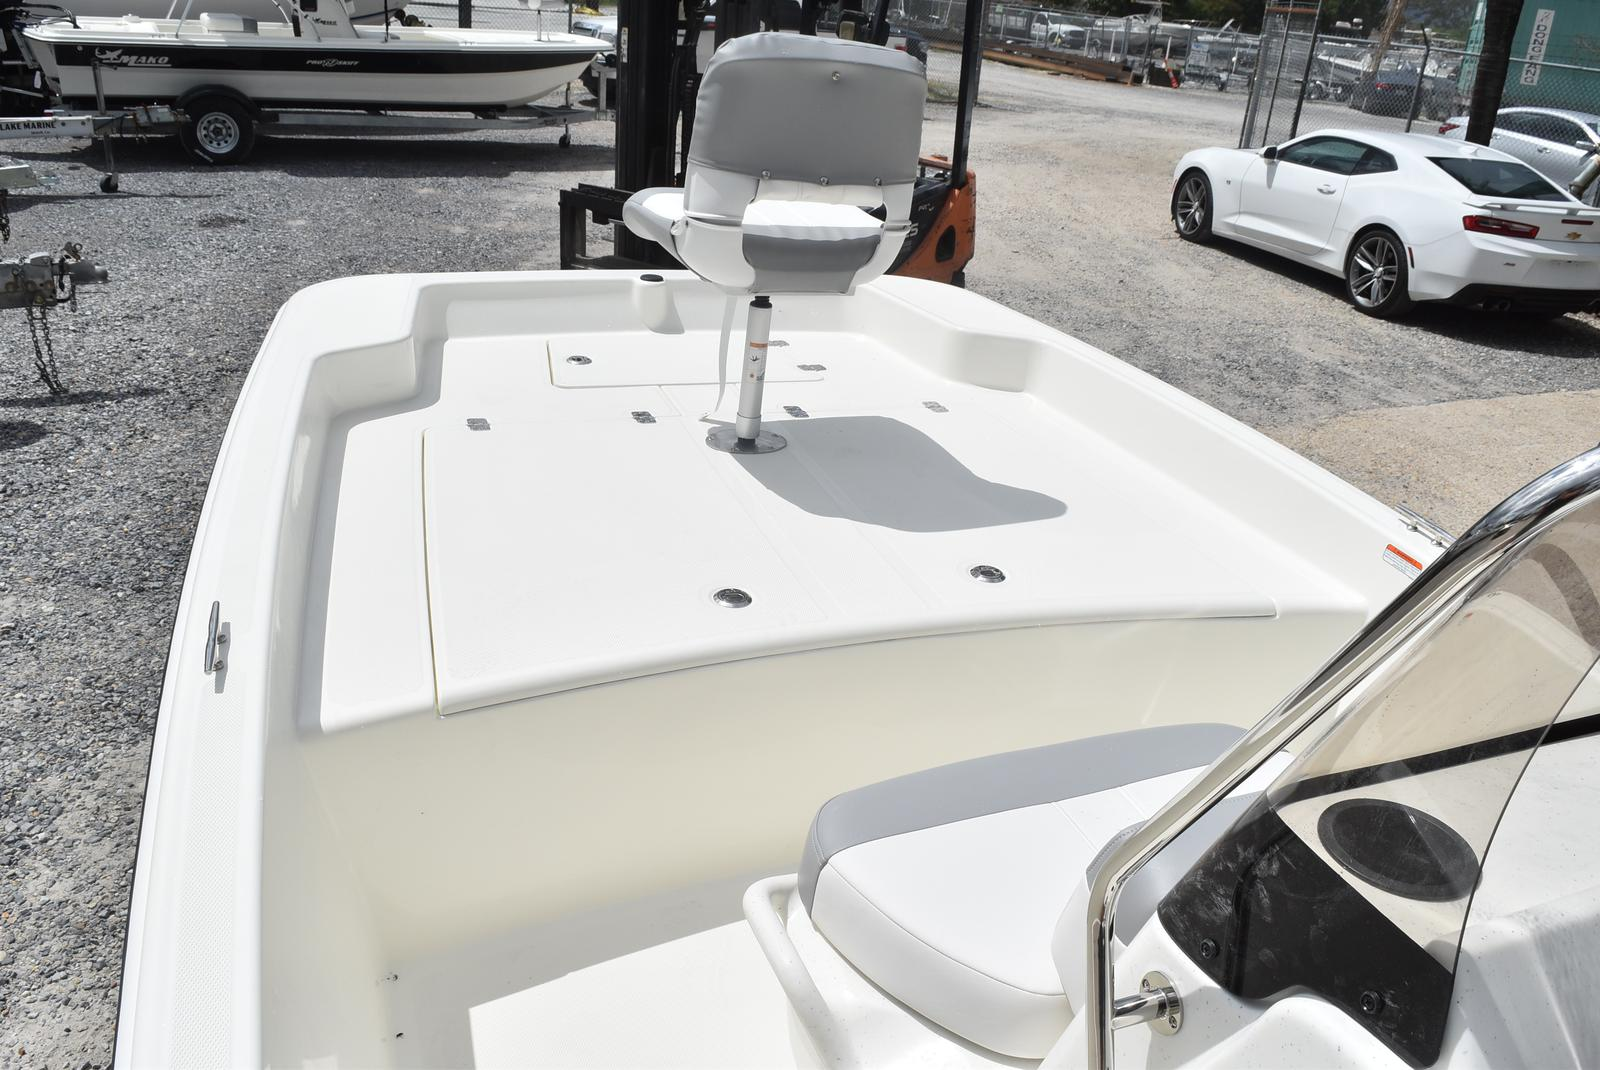 2020 Mako boat for sale, model of the boat is Pro Skiff 17, 75 ELPT & Image # 457 of 702